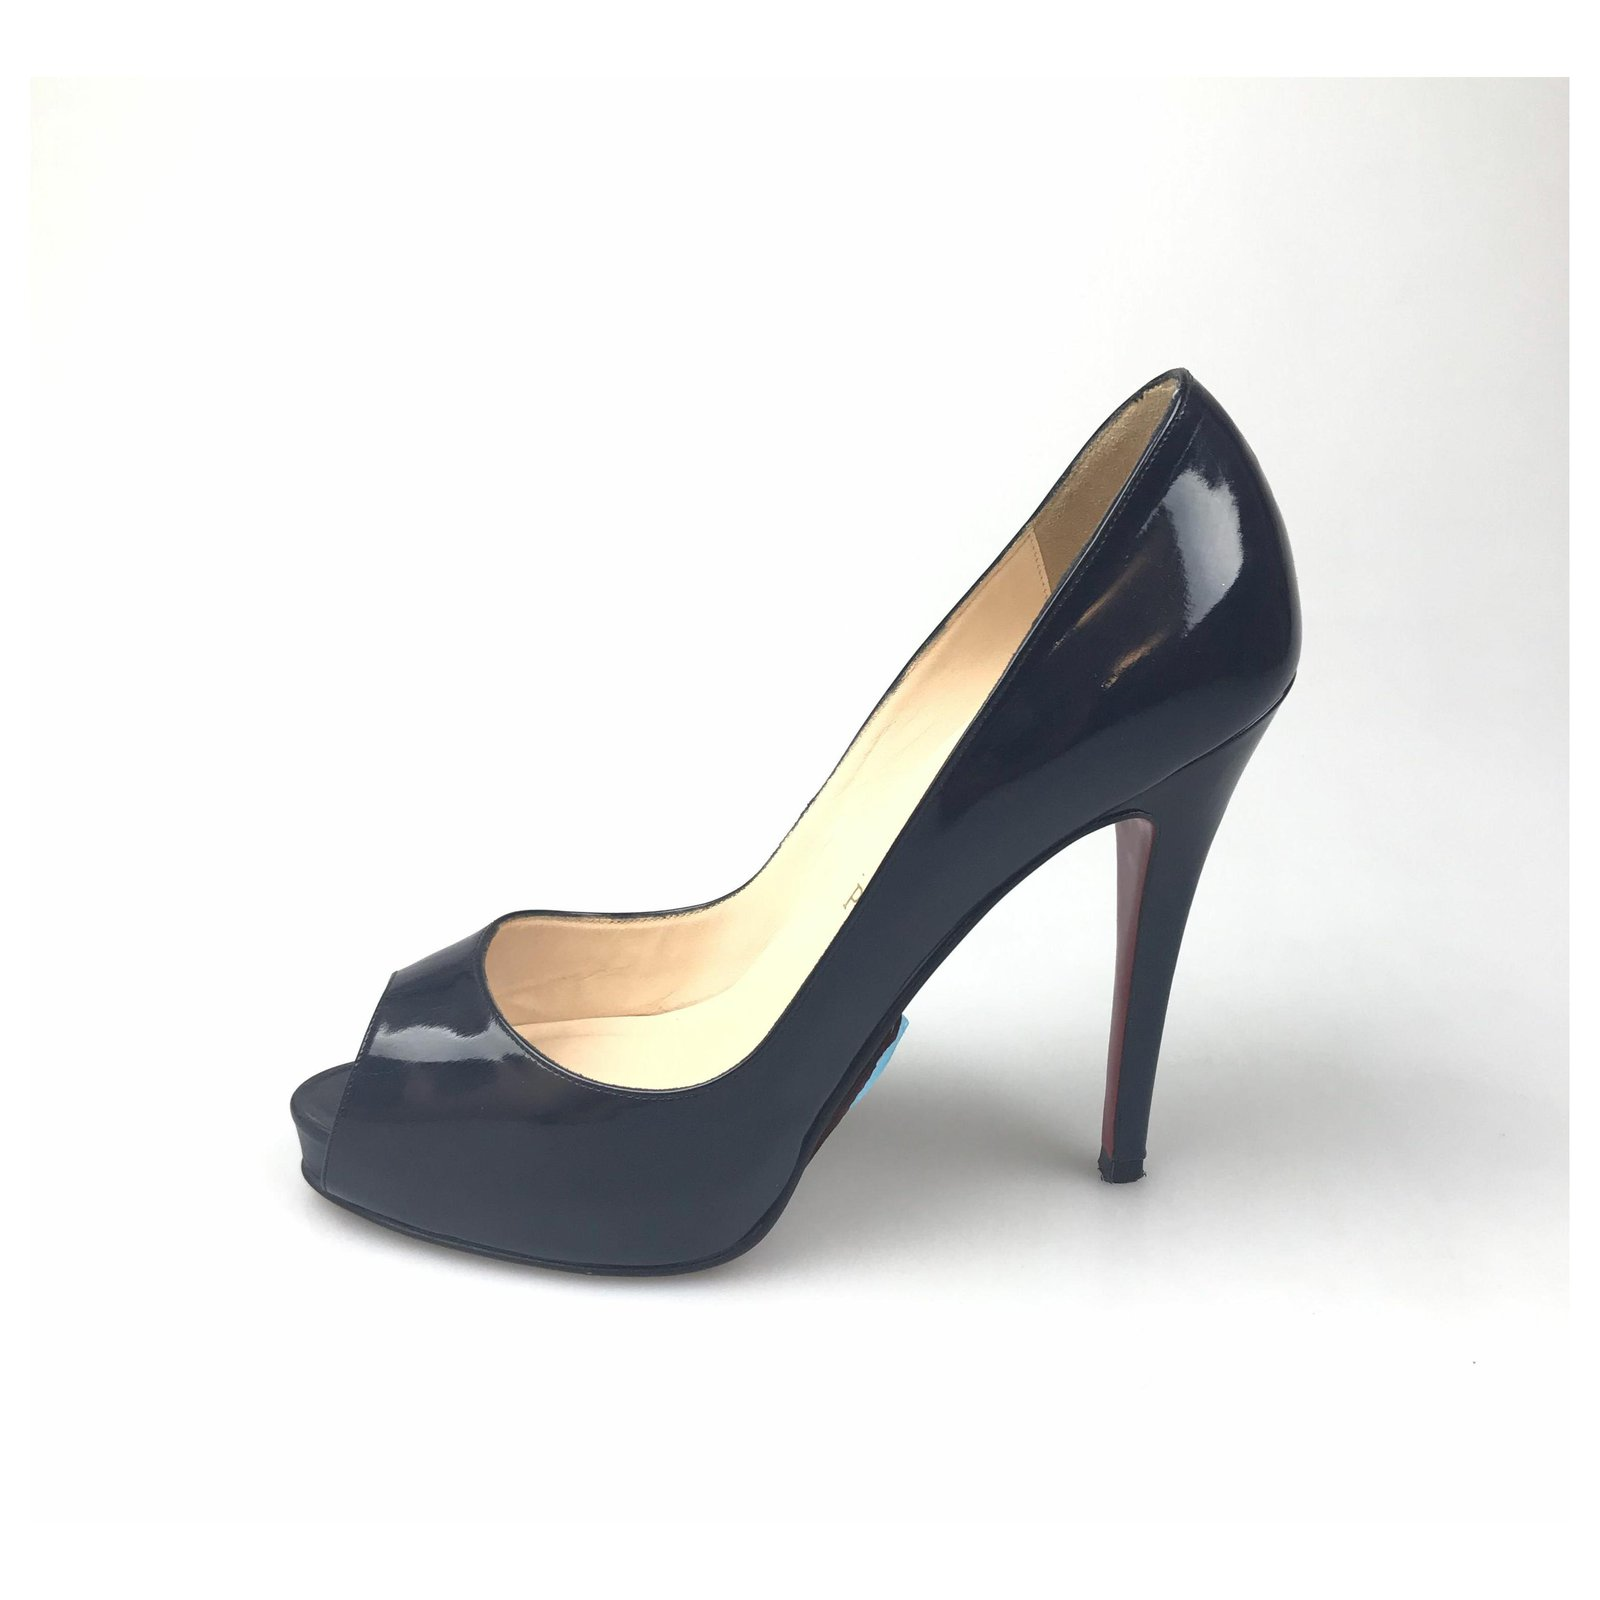 new arrivals 57ec2 78efc Christian Louboutin Black New Very Prive 120